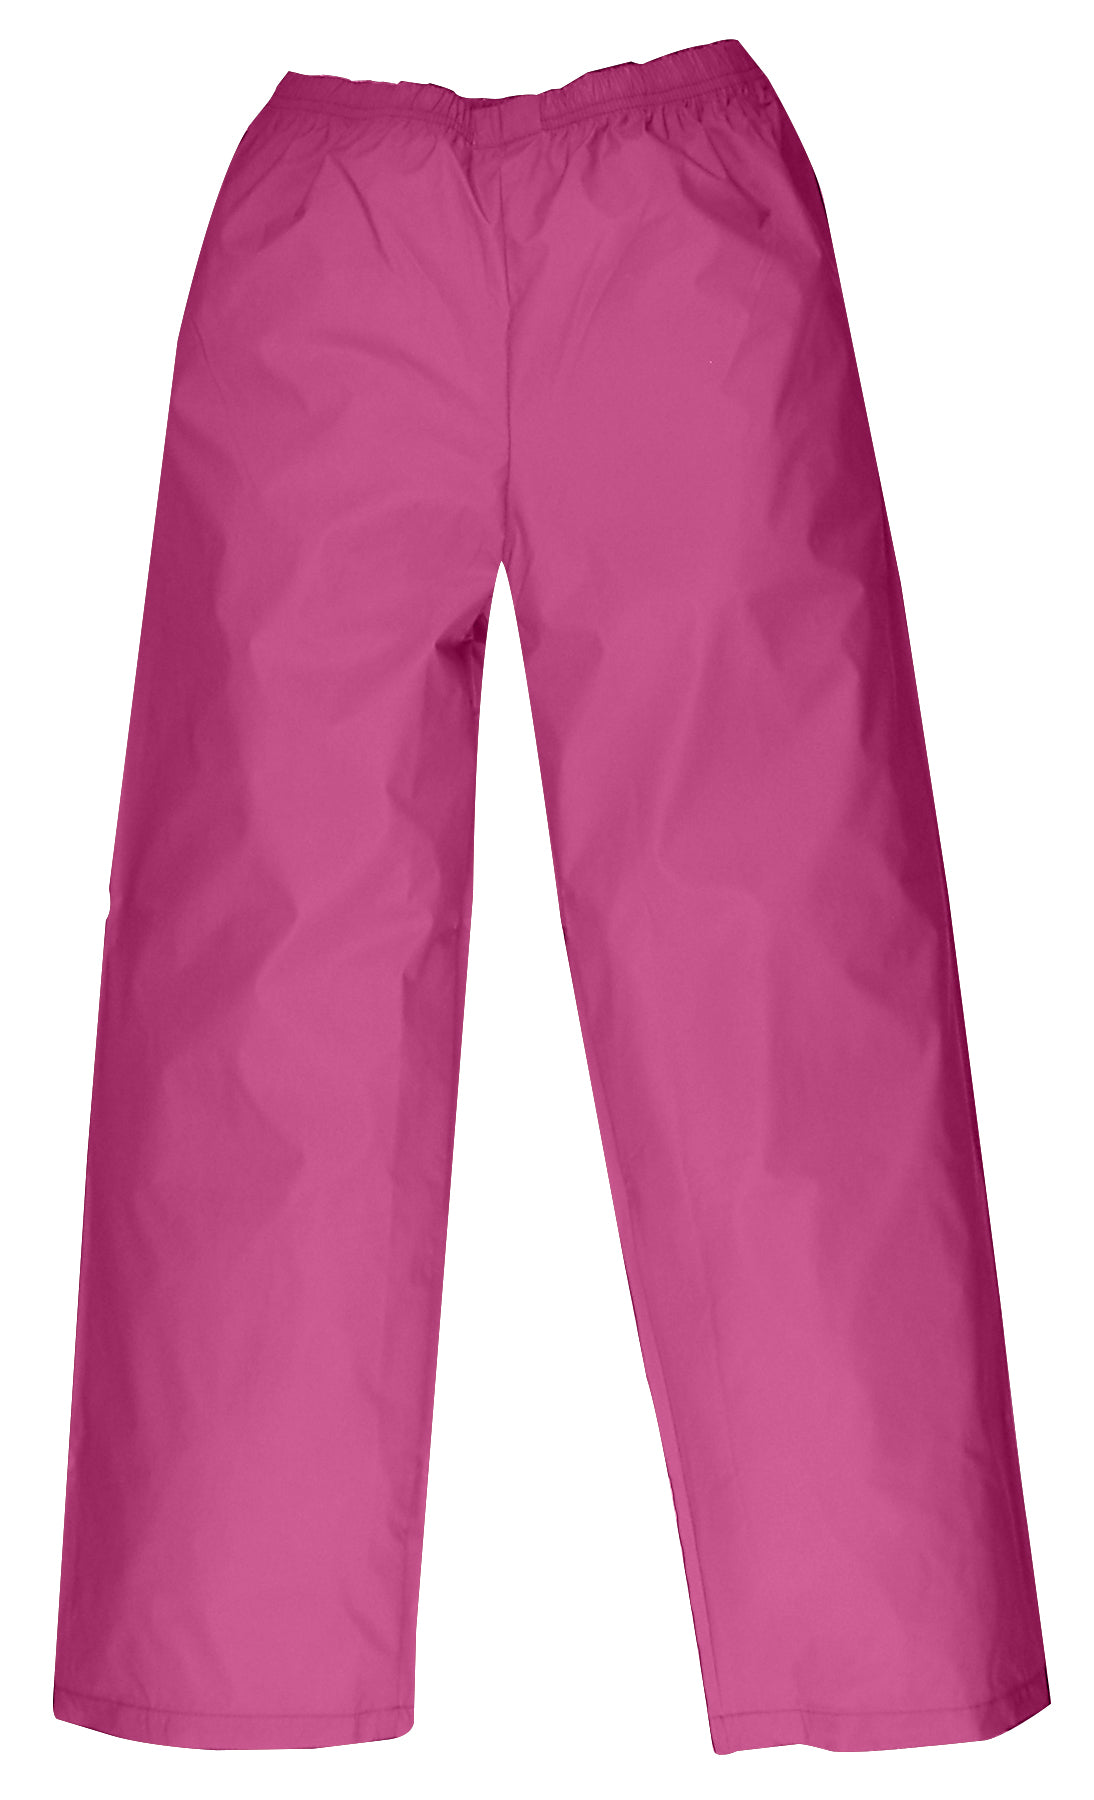 Red Ledge Youth Rain Stopper Pants